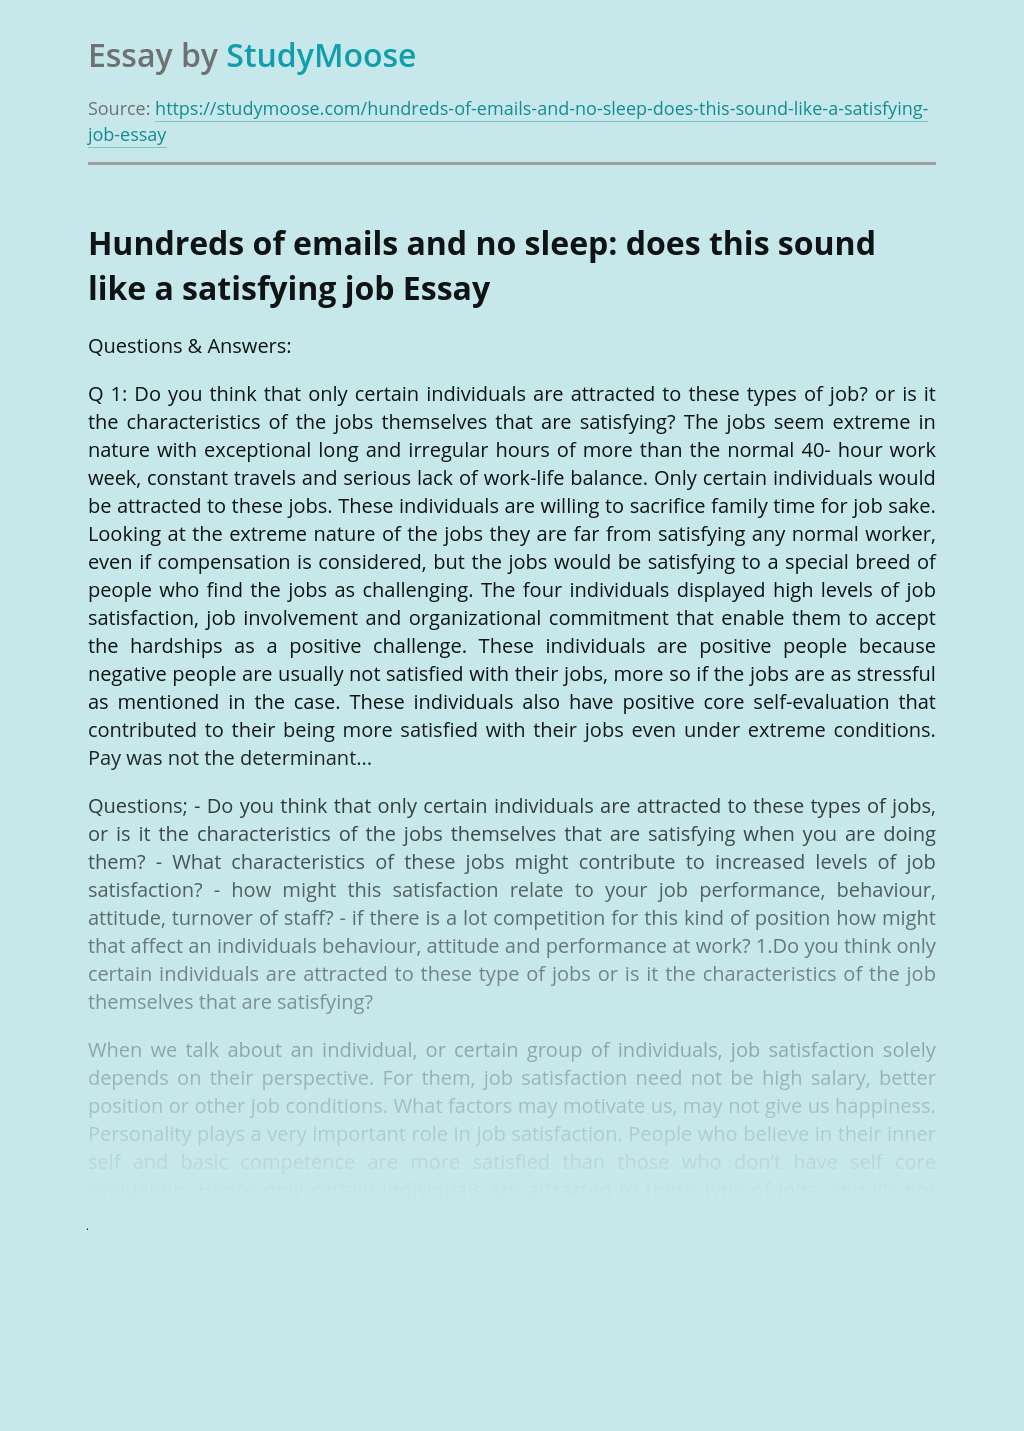 Hundreds of emails and no sleep: does this sound like a satisfying job